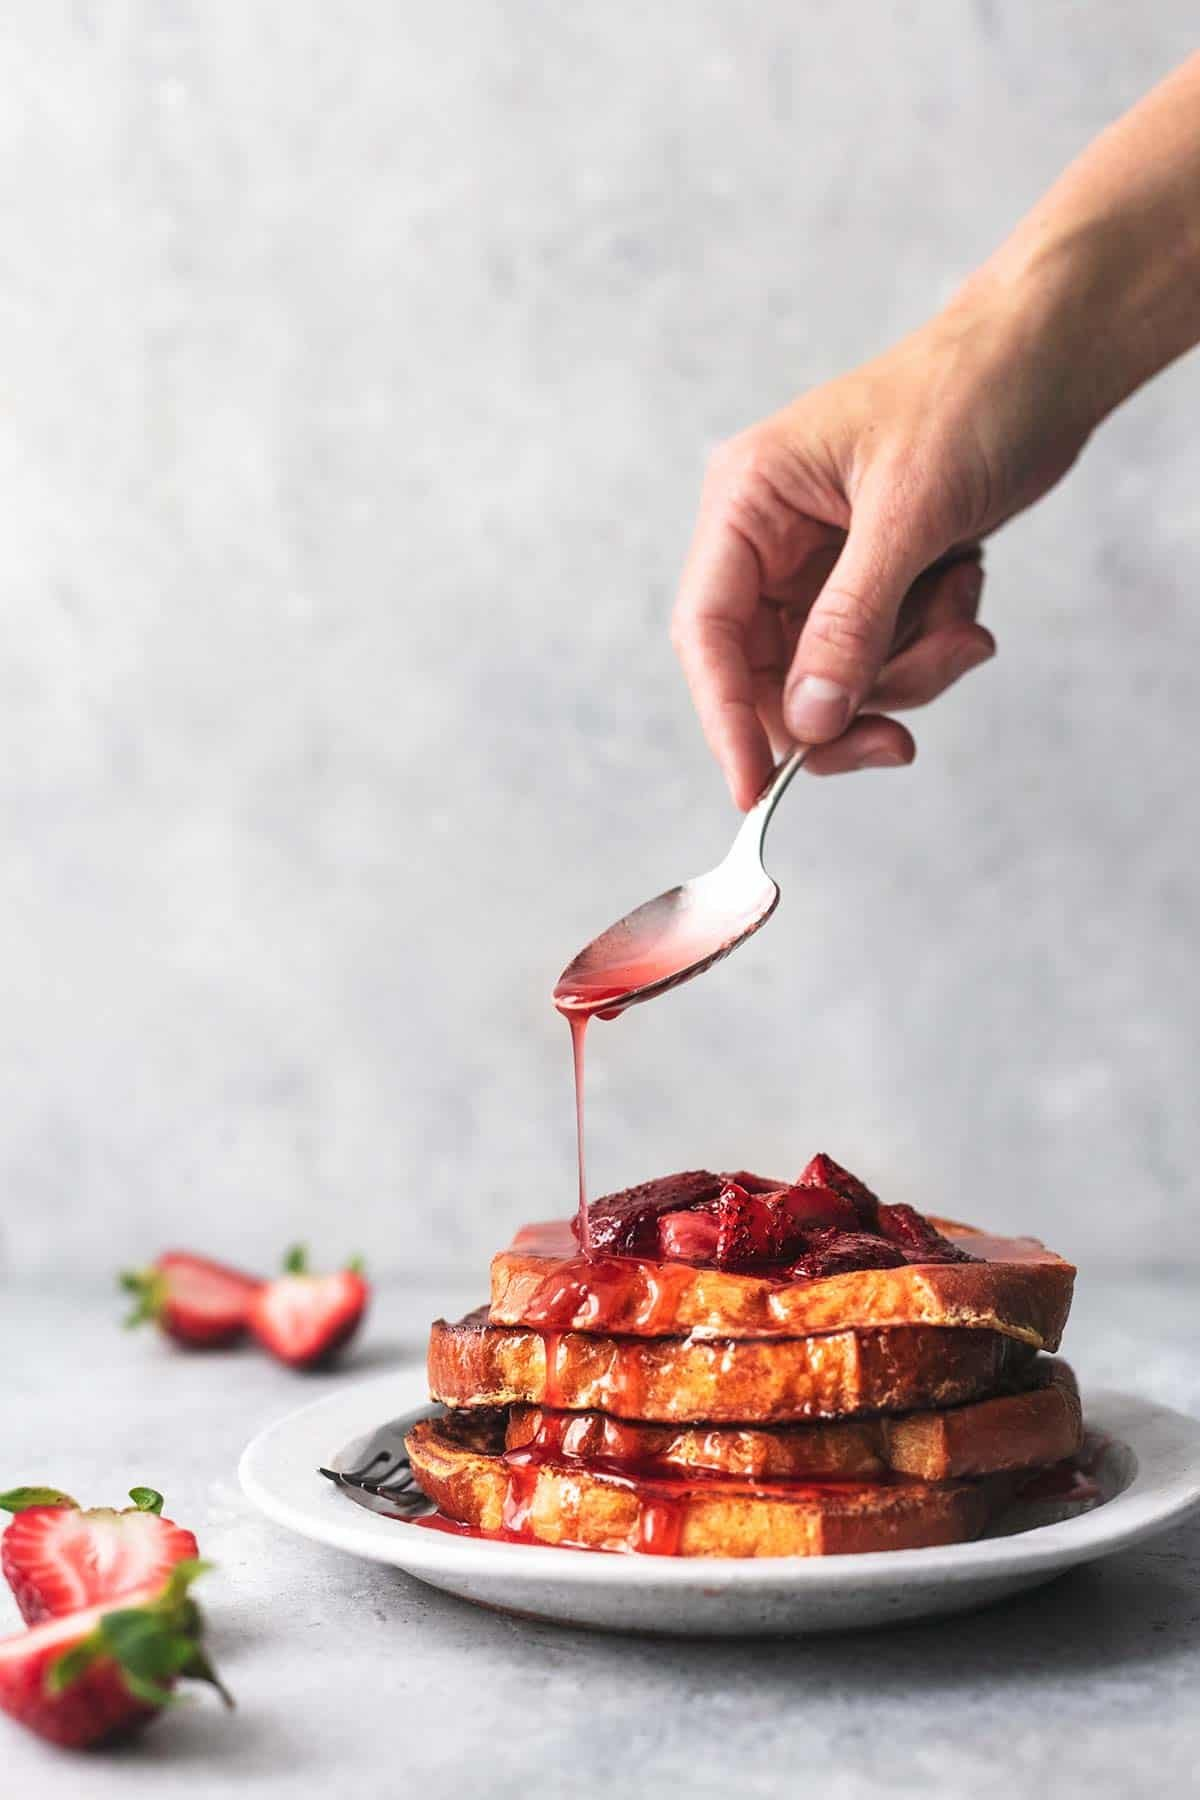 hand holding spoon and drizzling strawberry sauce onto stack of french toast